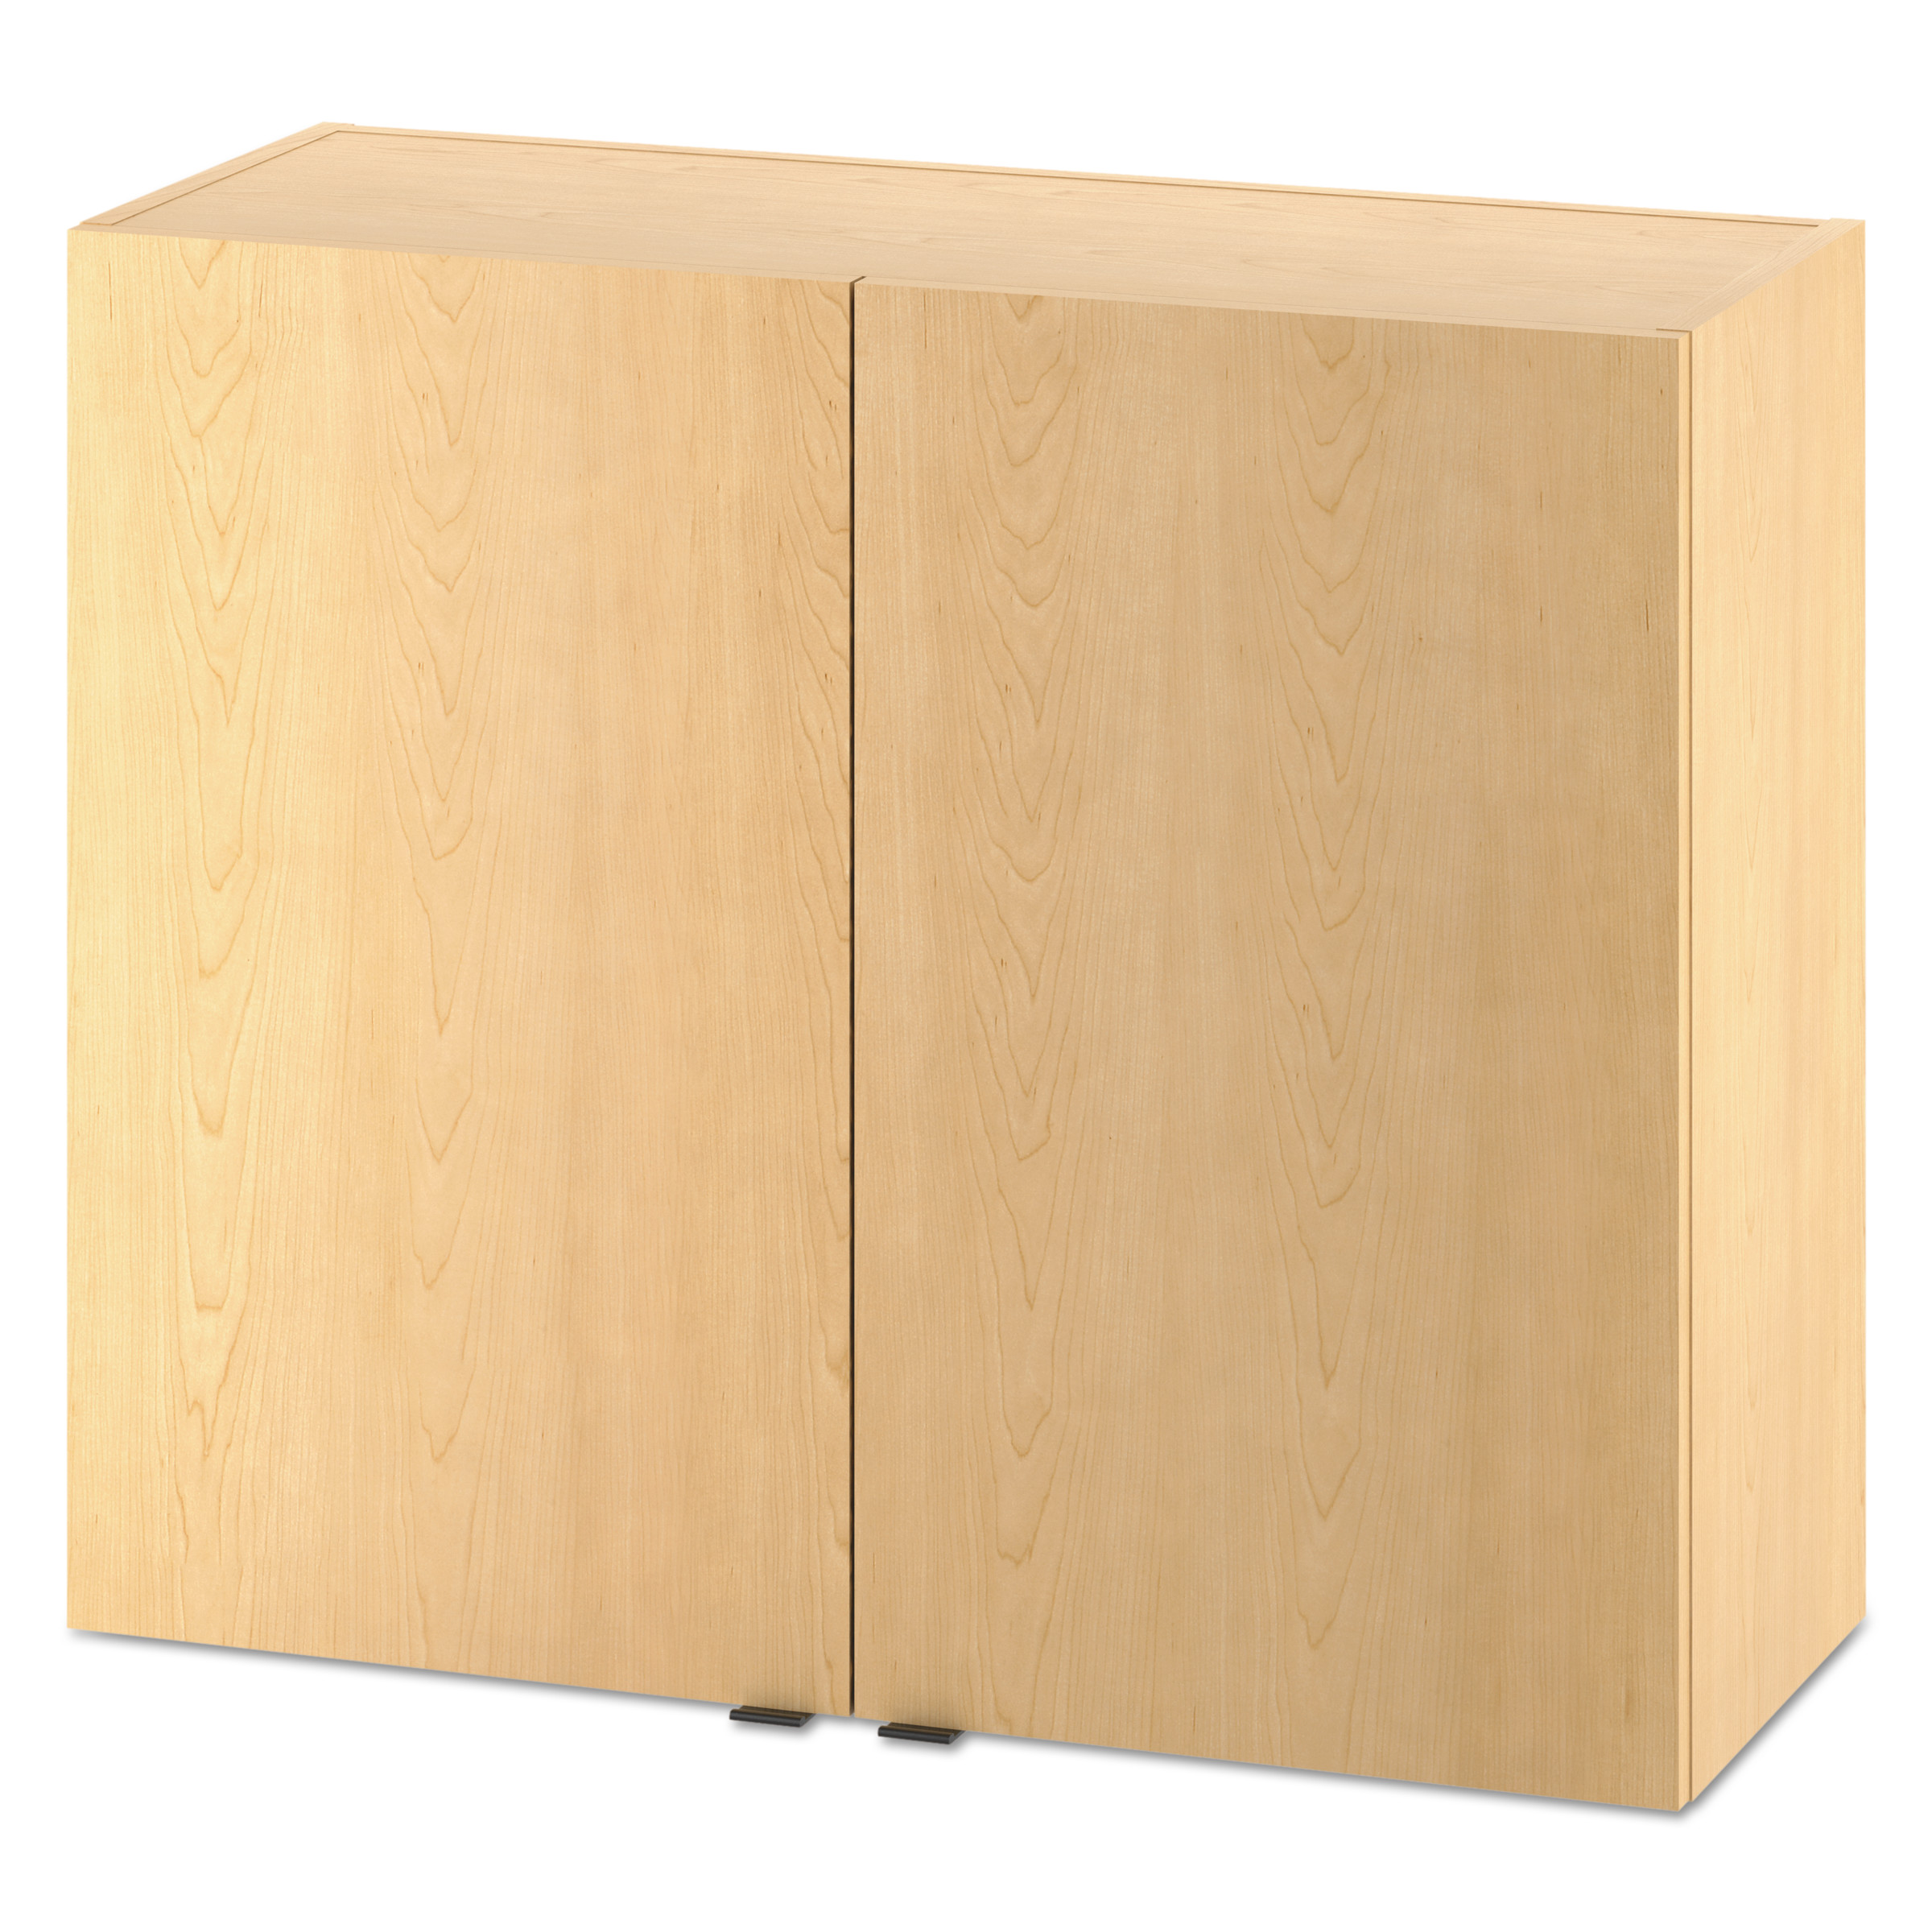 HON Hospitality Wall Cabinet, Two Doors, 36w X 14d X 30h, Natural Maple